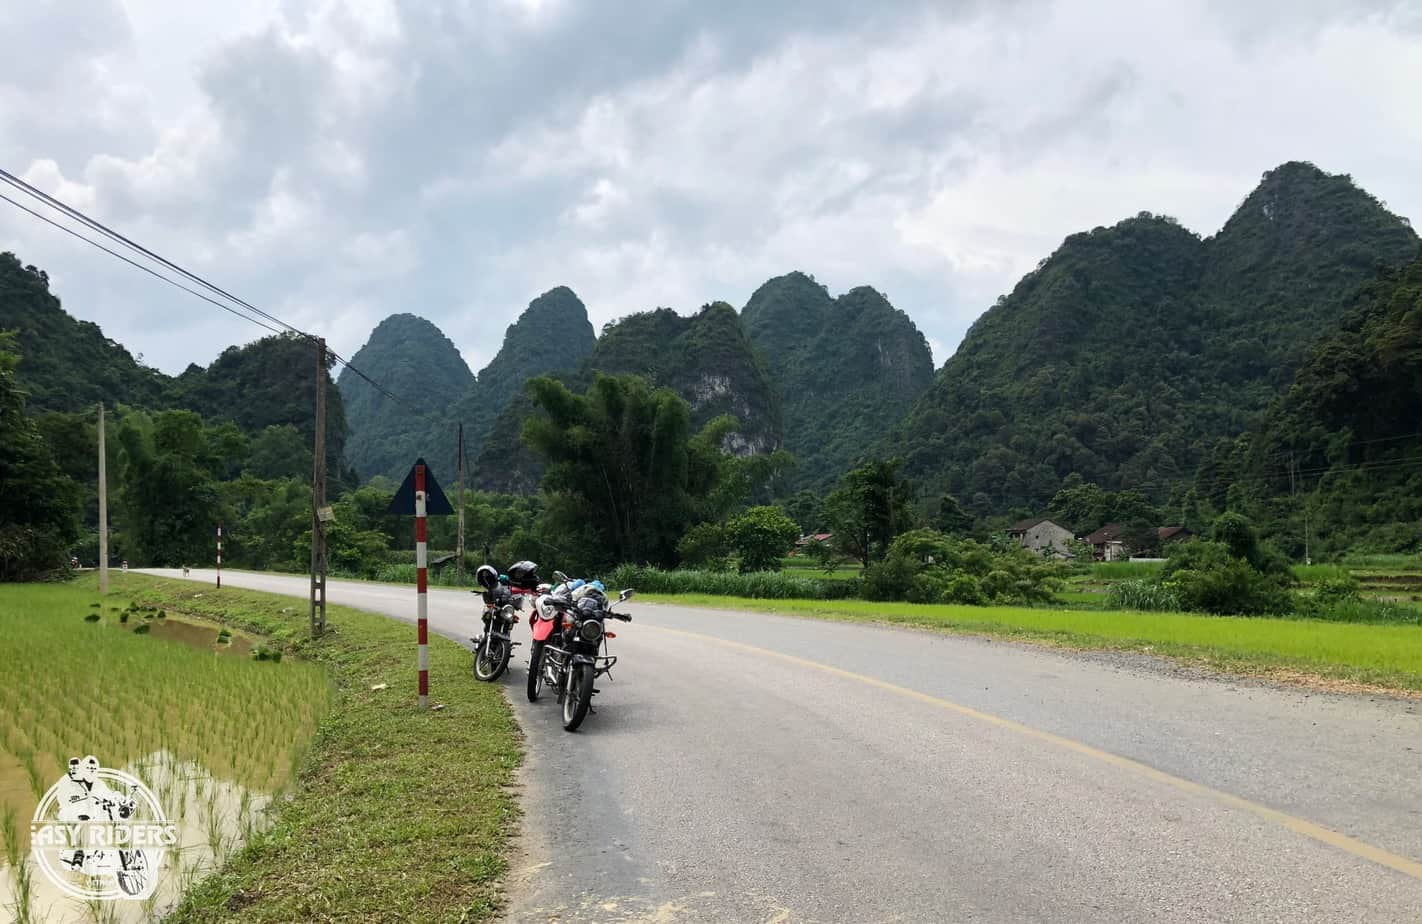 Day 5: Kon Tum – Kham Duc (160 km – 6 hours riding)